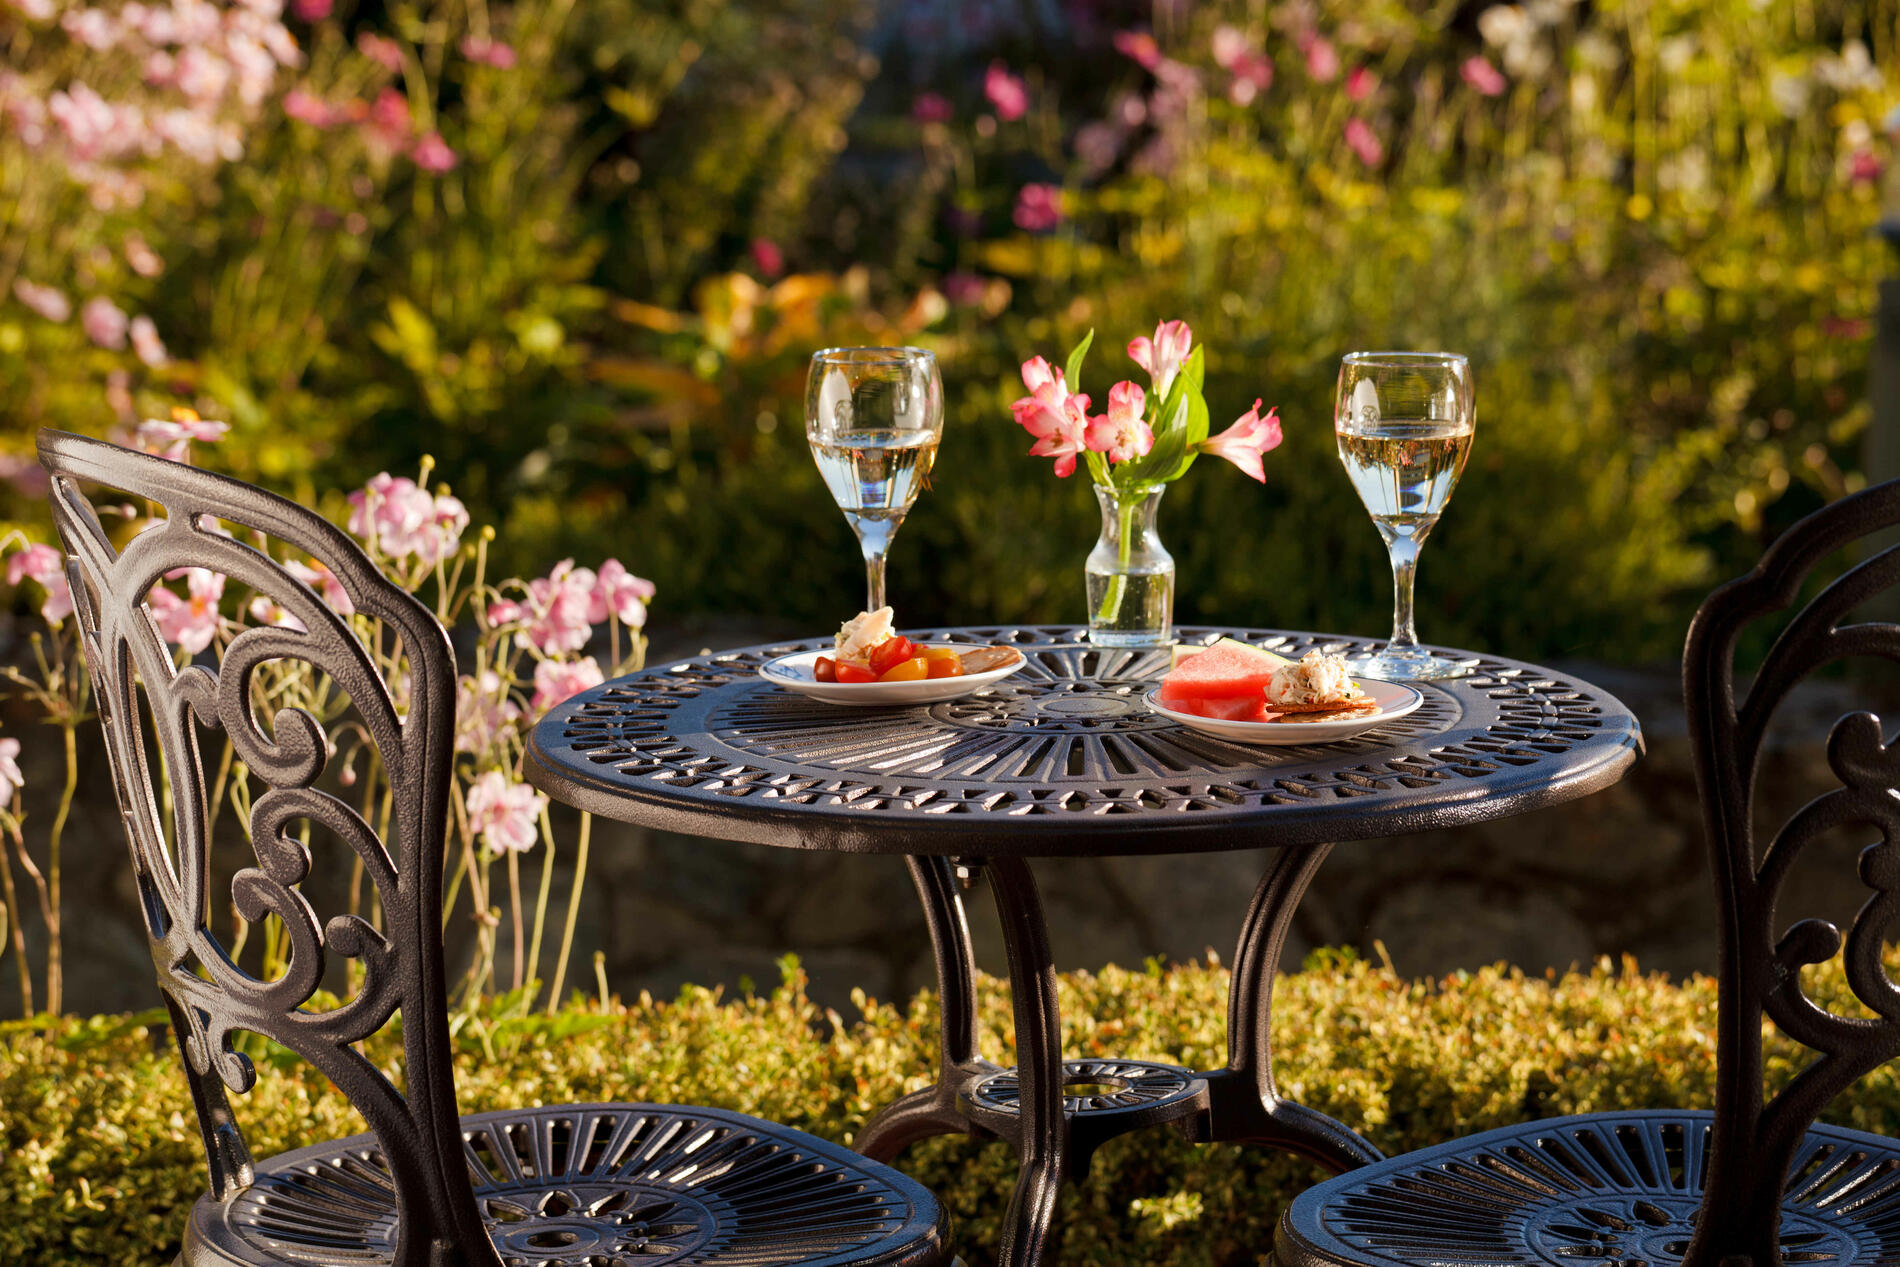 Glasses of wine and small plates on wrought iron bistro set